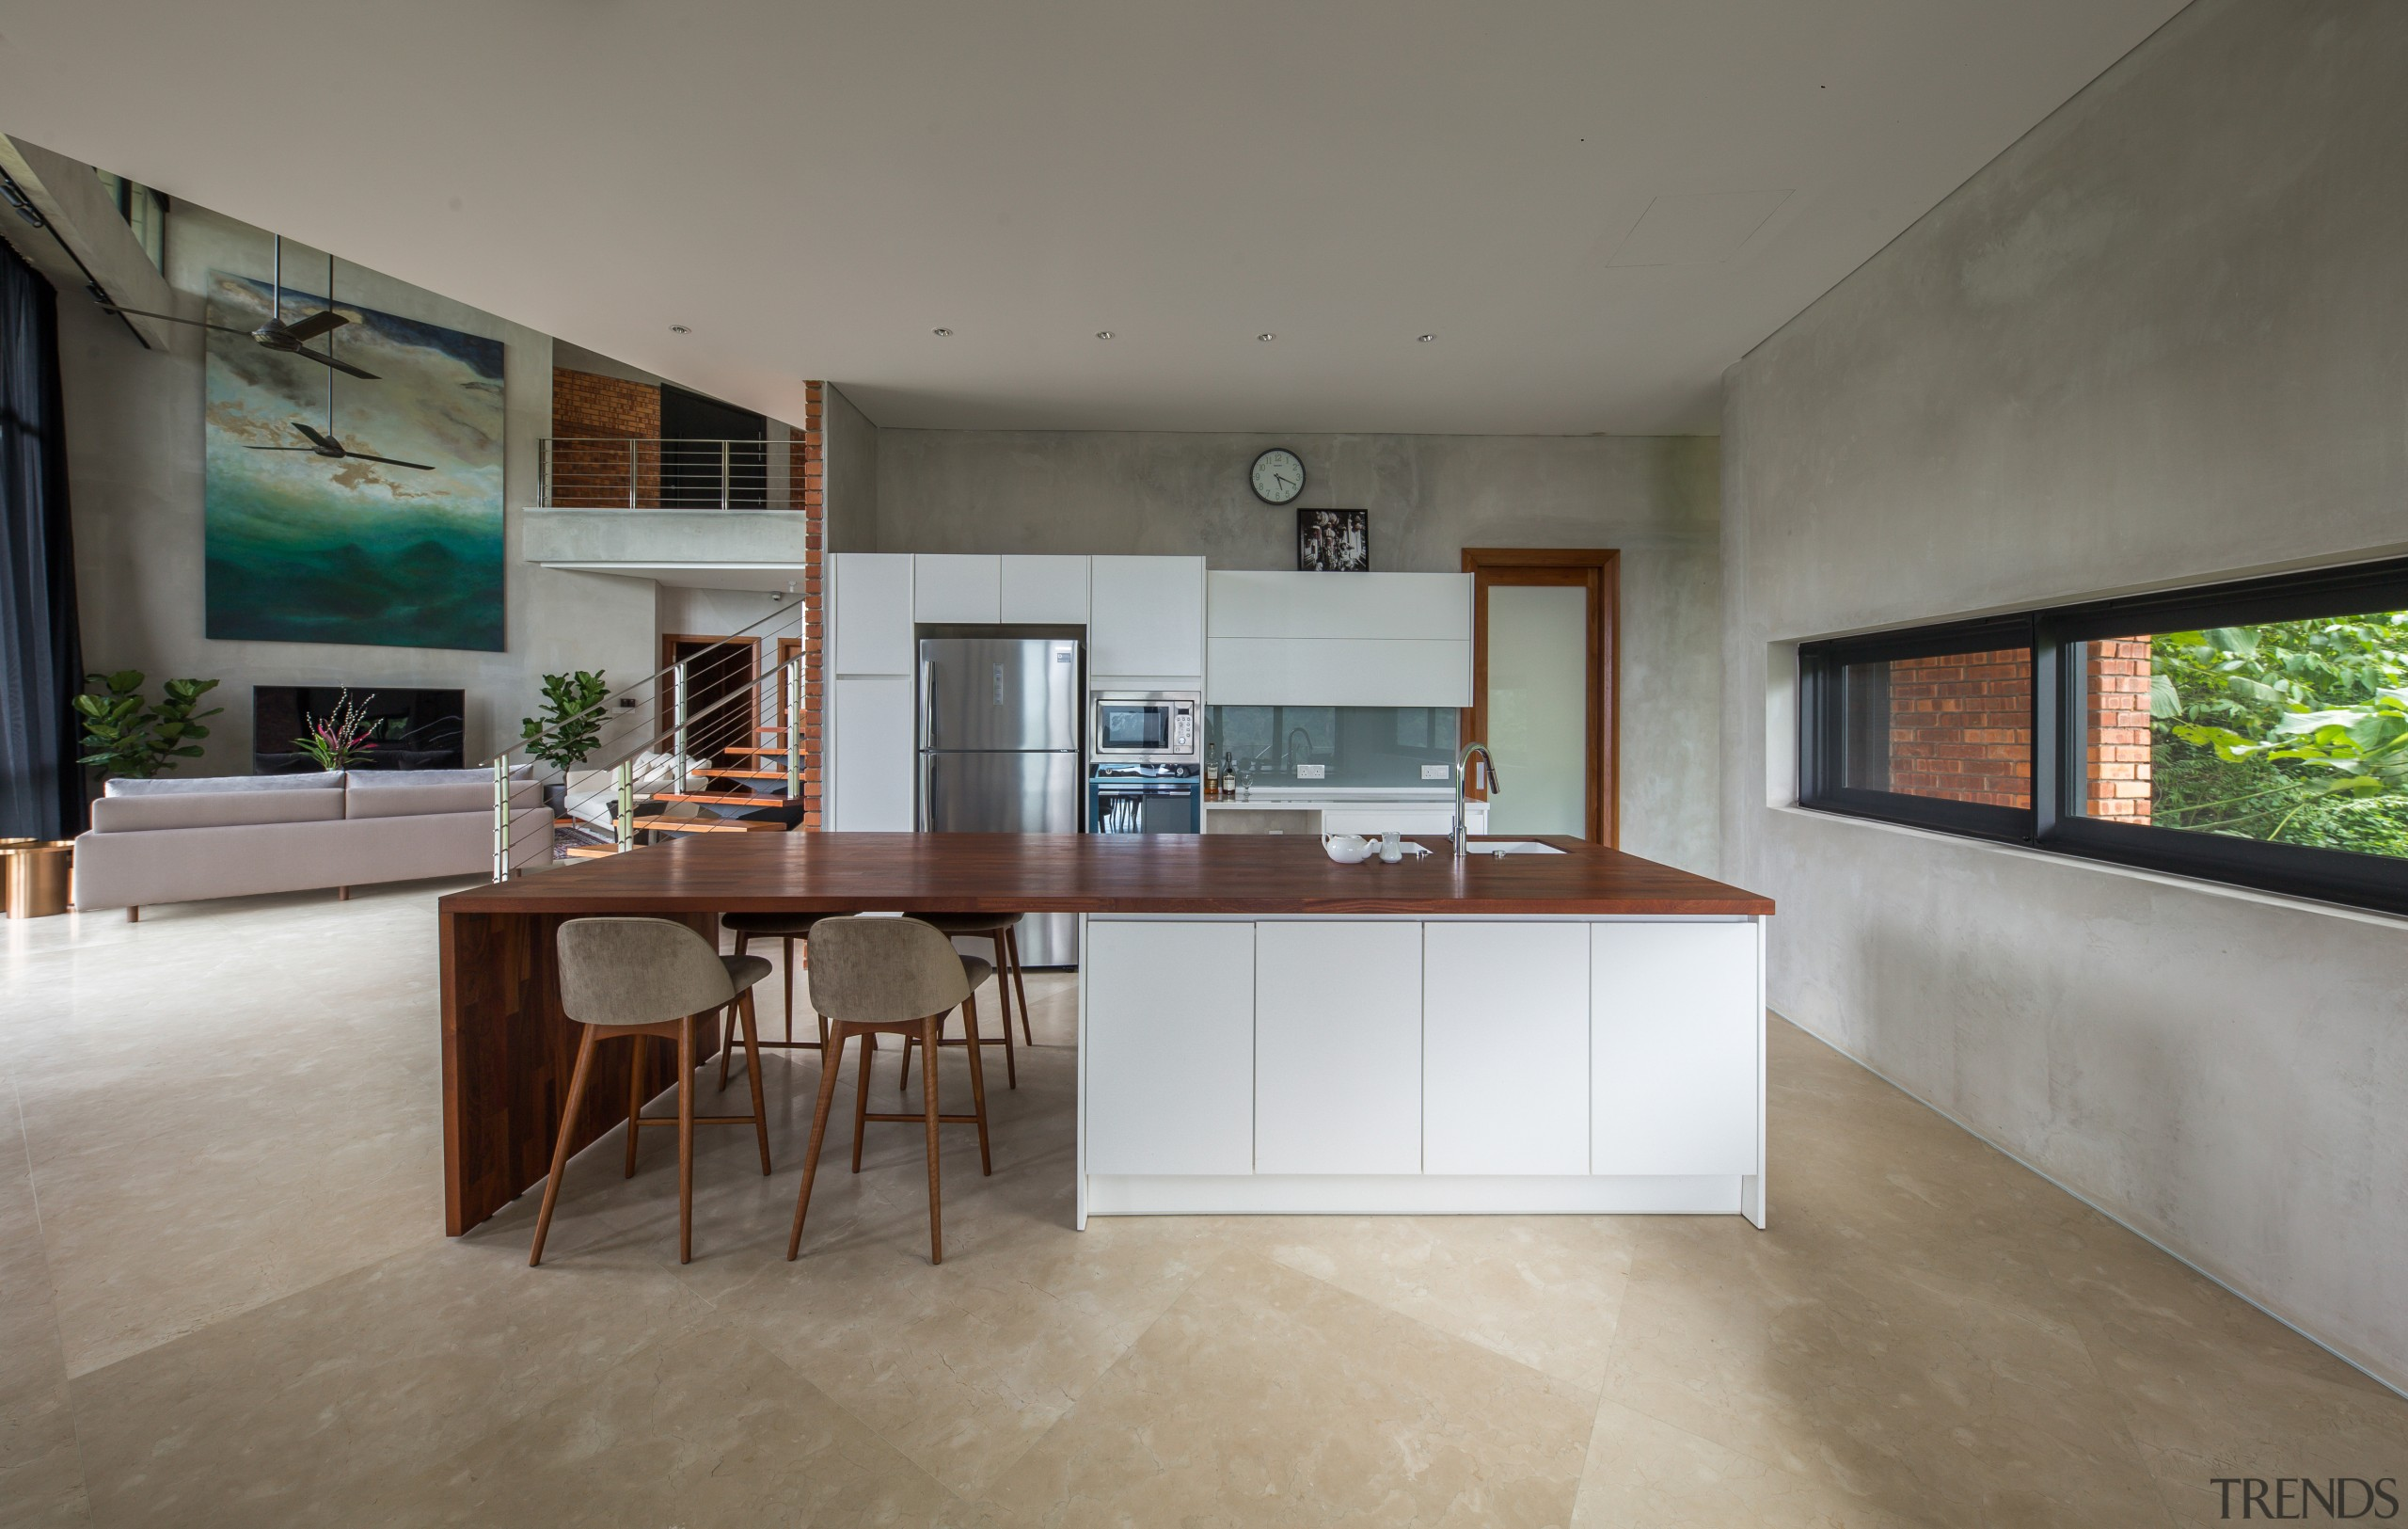 Crisp and contemporary, the kitchen is handy to architecture, building, cabinetry, ceiling, concrete, countertop, daylighting, floor, flooring, furniture, hardwood, home, house, interior design, kitchen, living room, loft, property, real estate, room, table, tile, wood flooring, gray